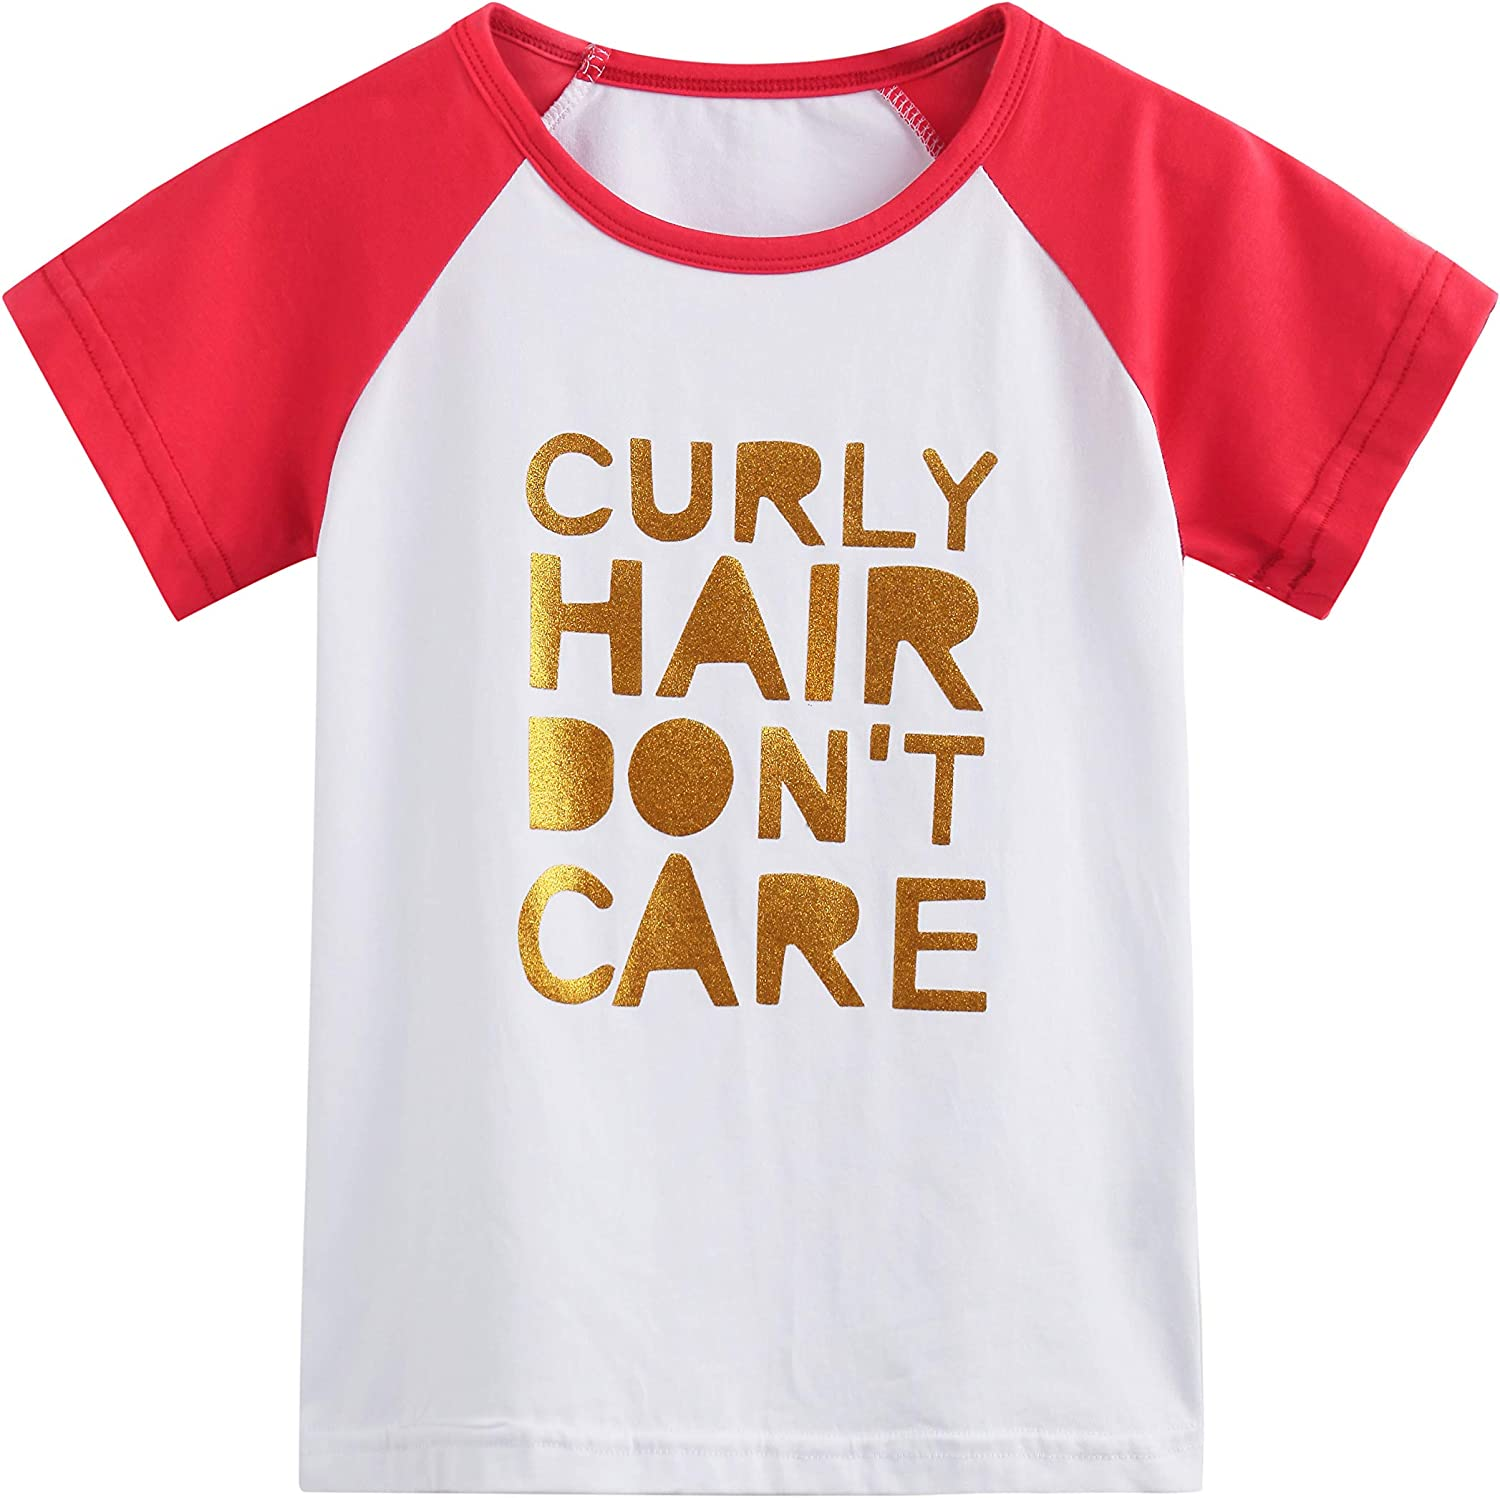 Toddler Baby Girls Boys Raglan Tees for Short Sleeve Cotton T-Shirt Baseball Jesey Culy Hair Don't Care